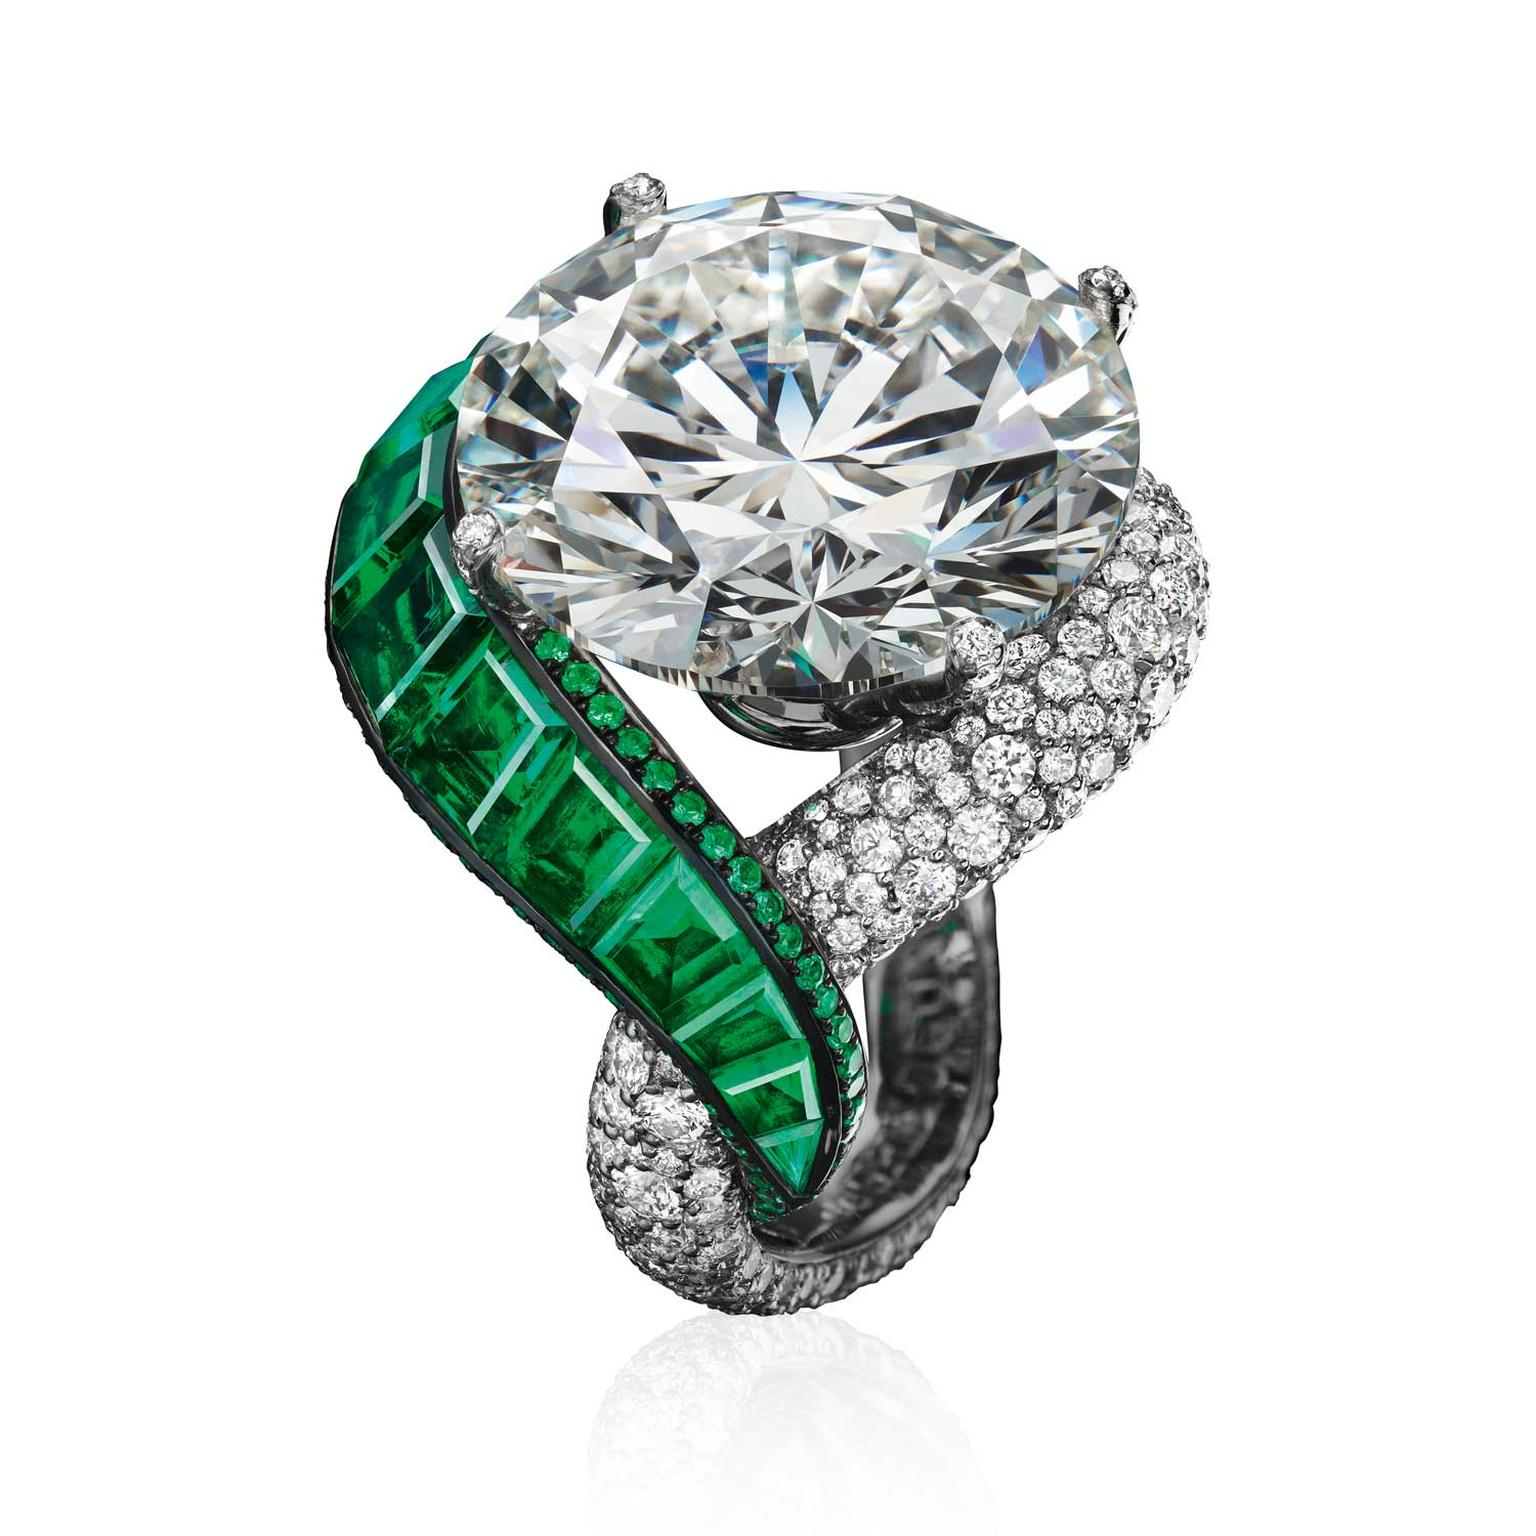 de Grisogono emerald and diamond ring